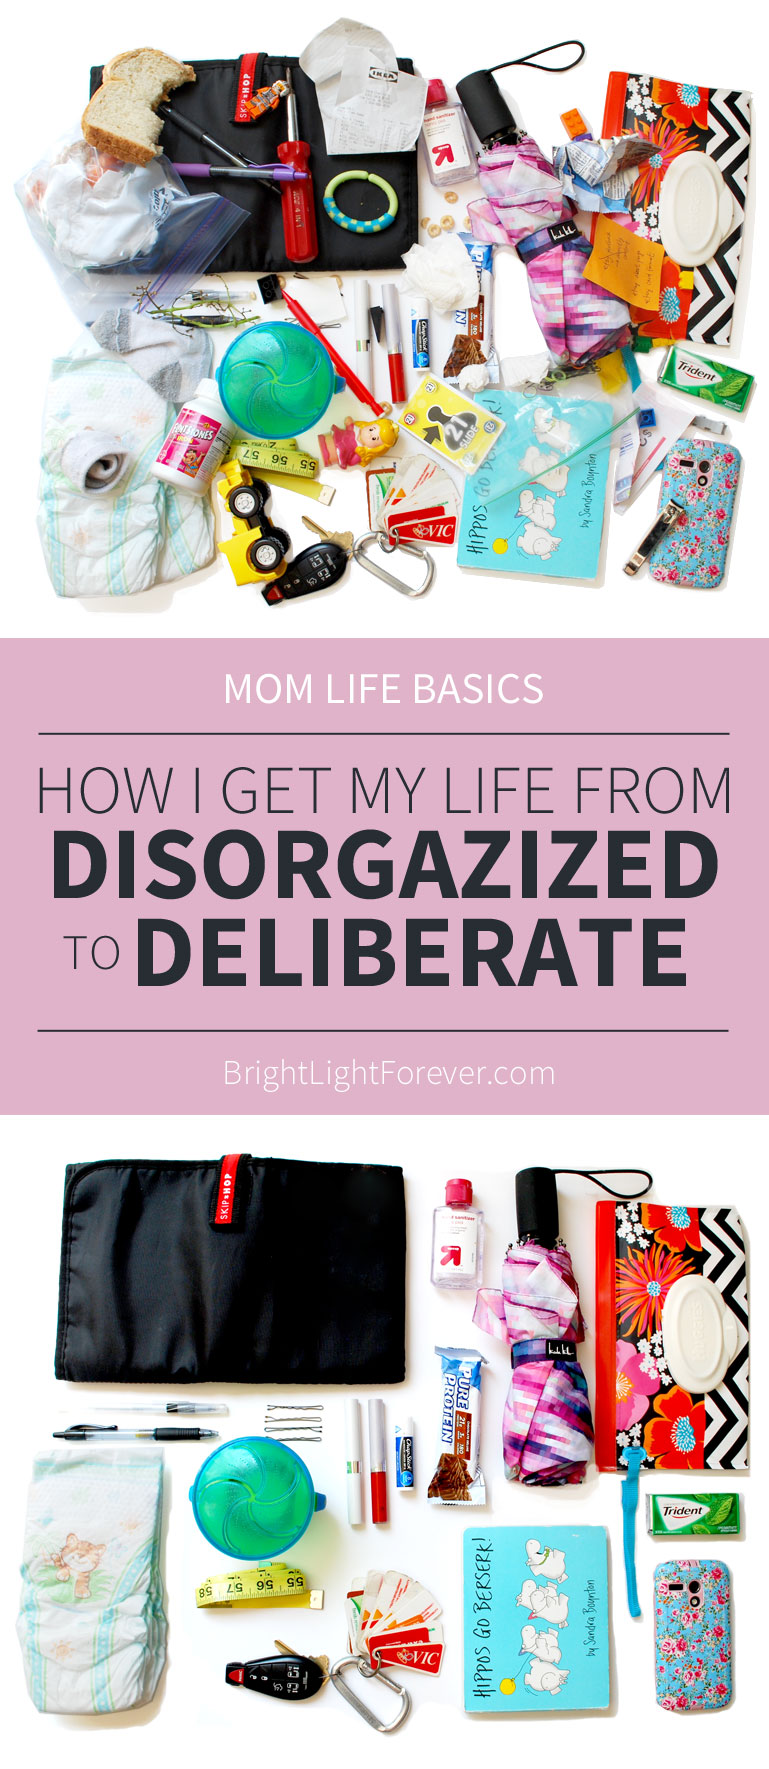 Mom Life Basics | How to get your life from disorganized to deliberate in just 2 steps